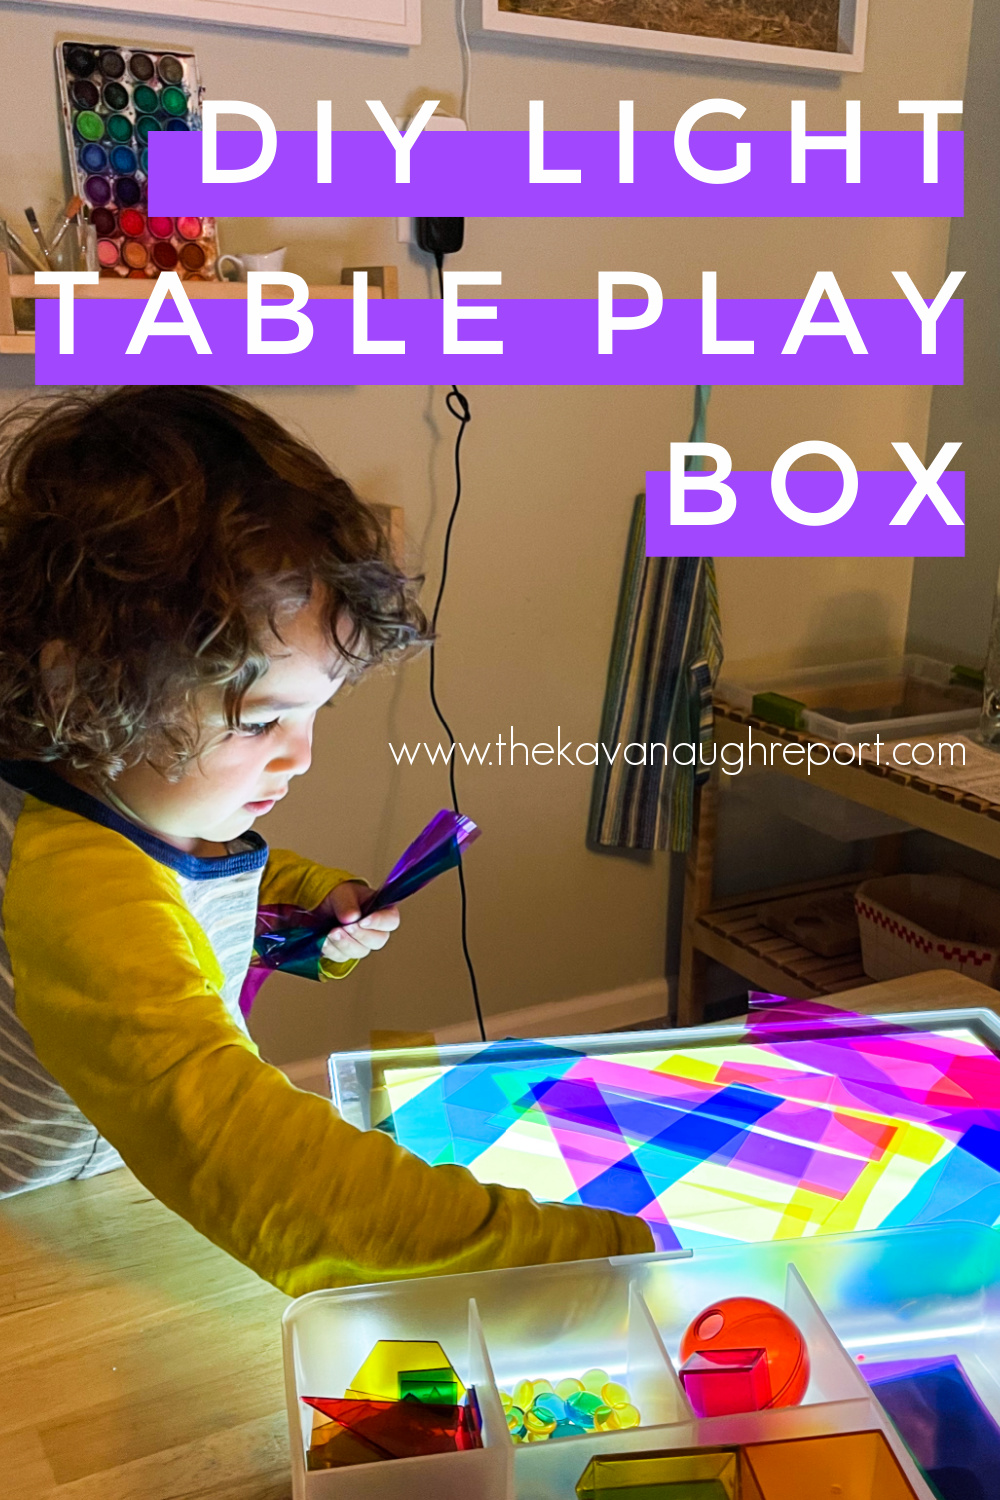 A DIY light table play box for 4-year-olds. This Montessori friendly toy is perfect for a variety of fun learning activities.